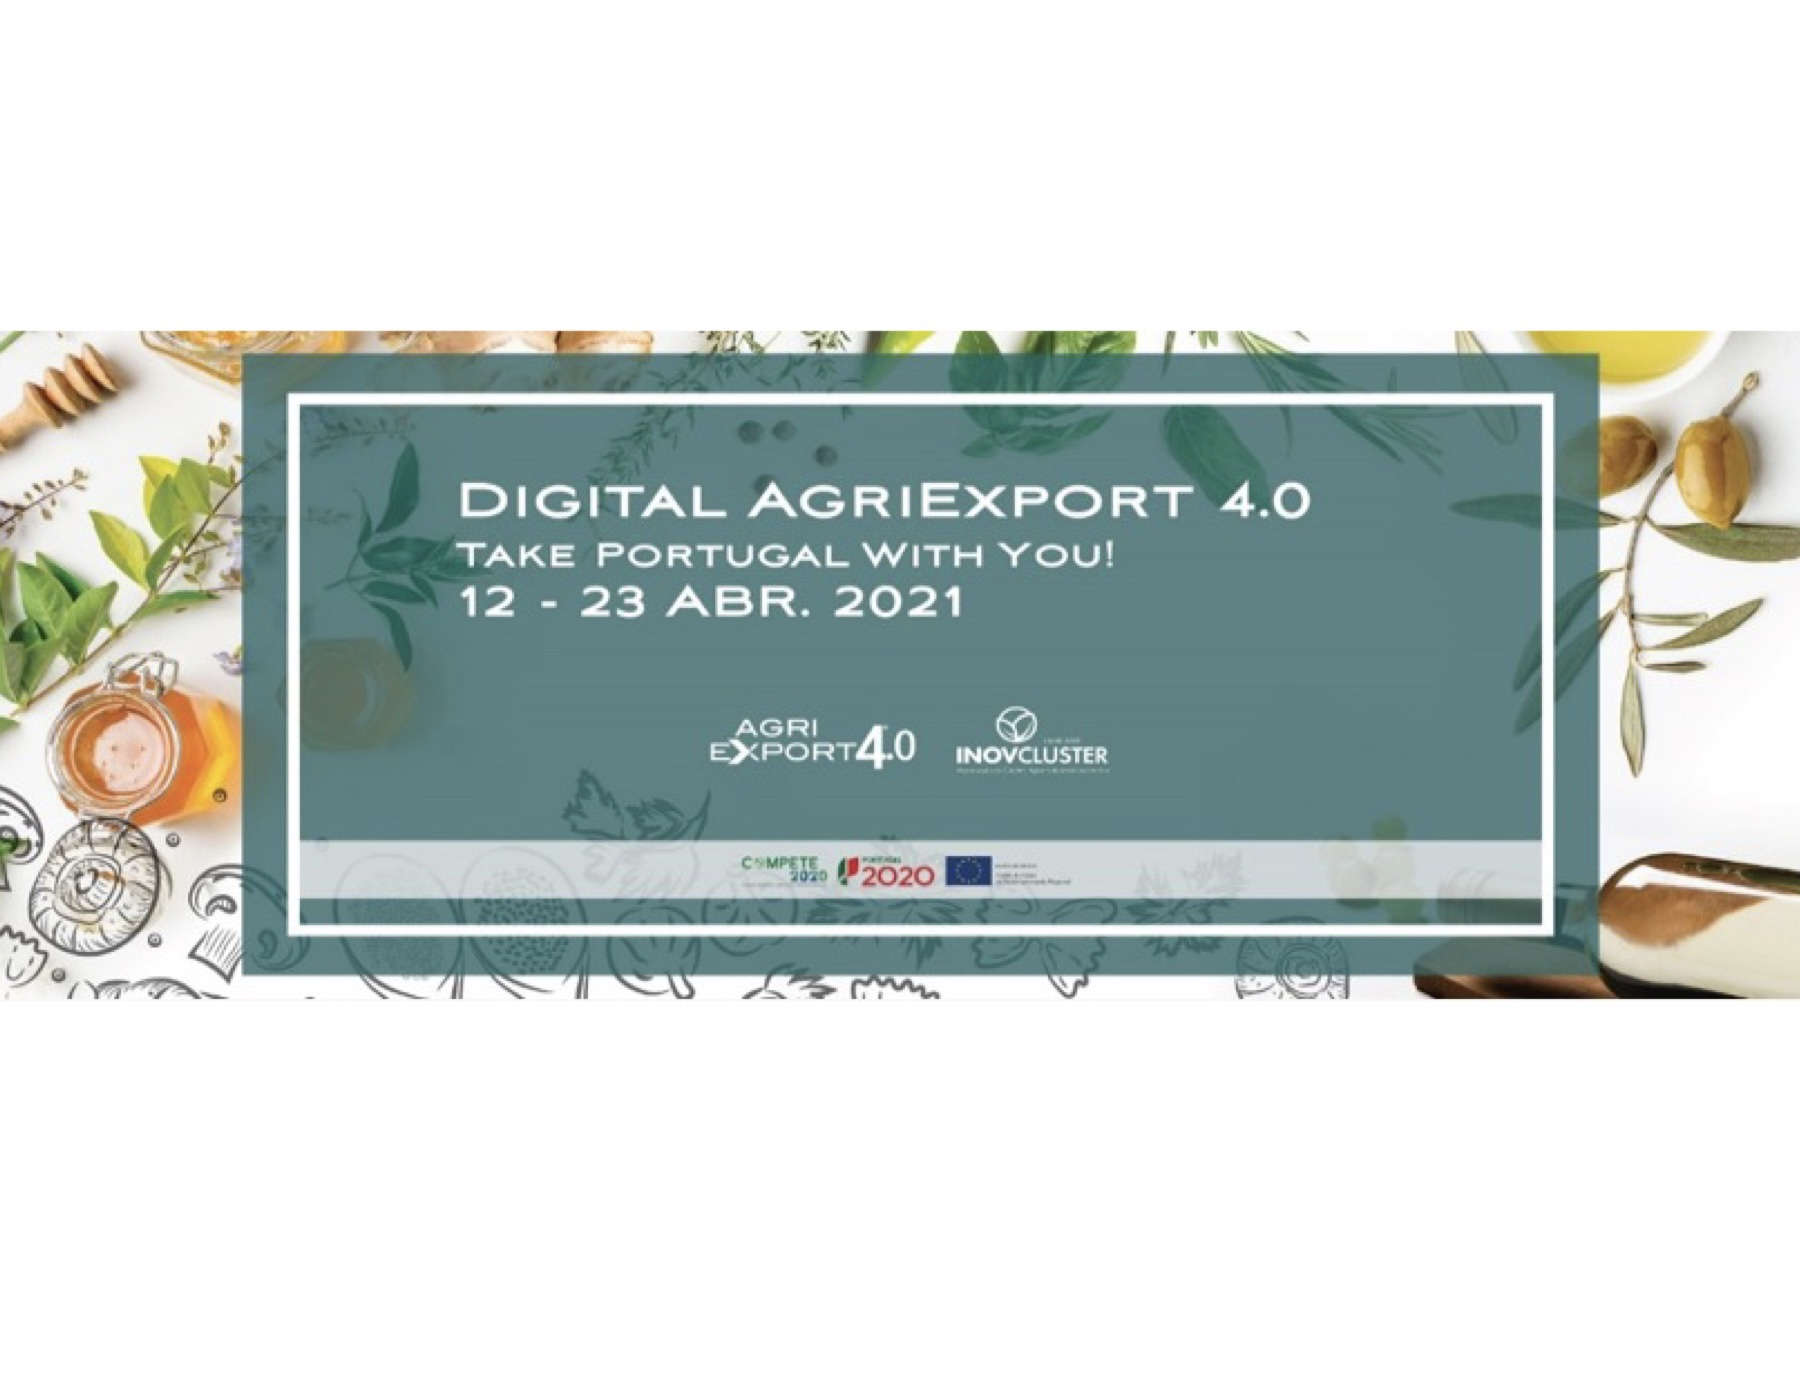 DIGITAL AGRIEXPORT 4.0 International Meeting take Portugal with You